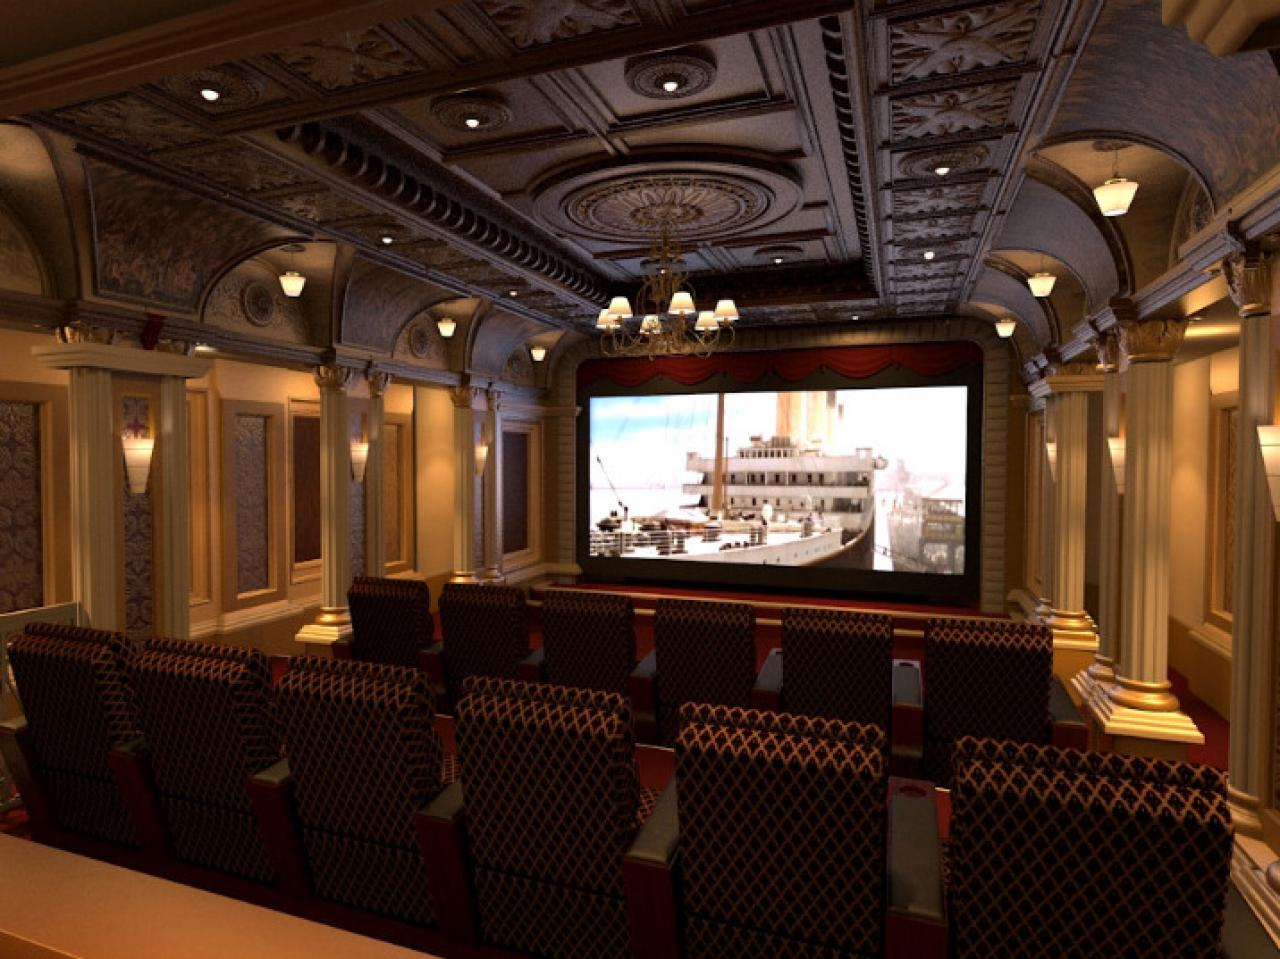 lord of the theaters - Home Theater Design Plans